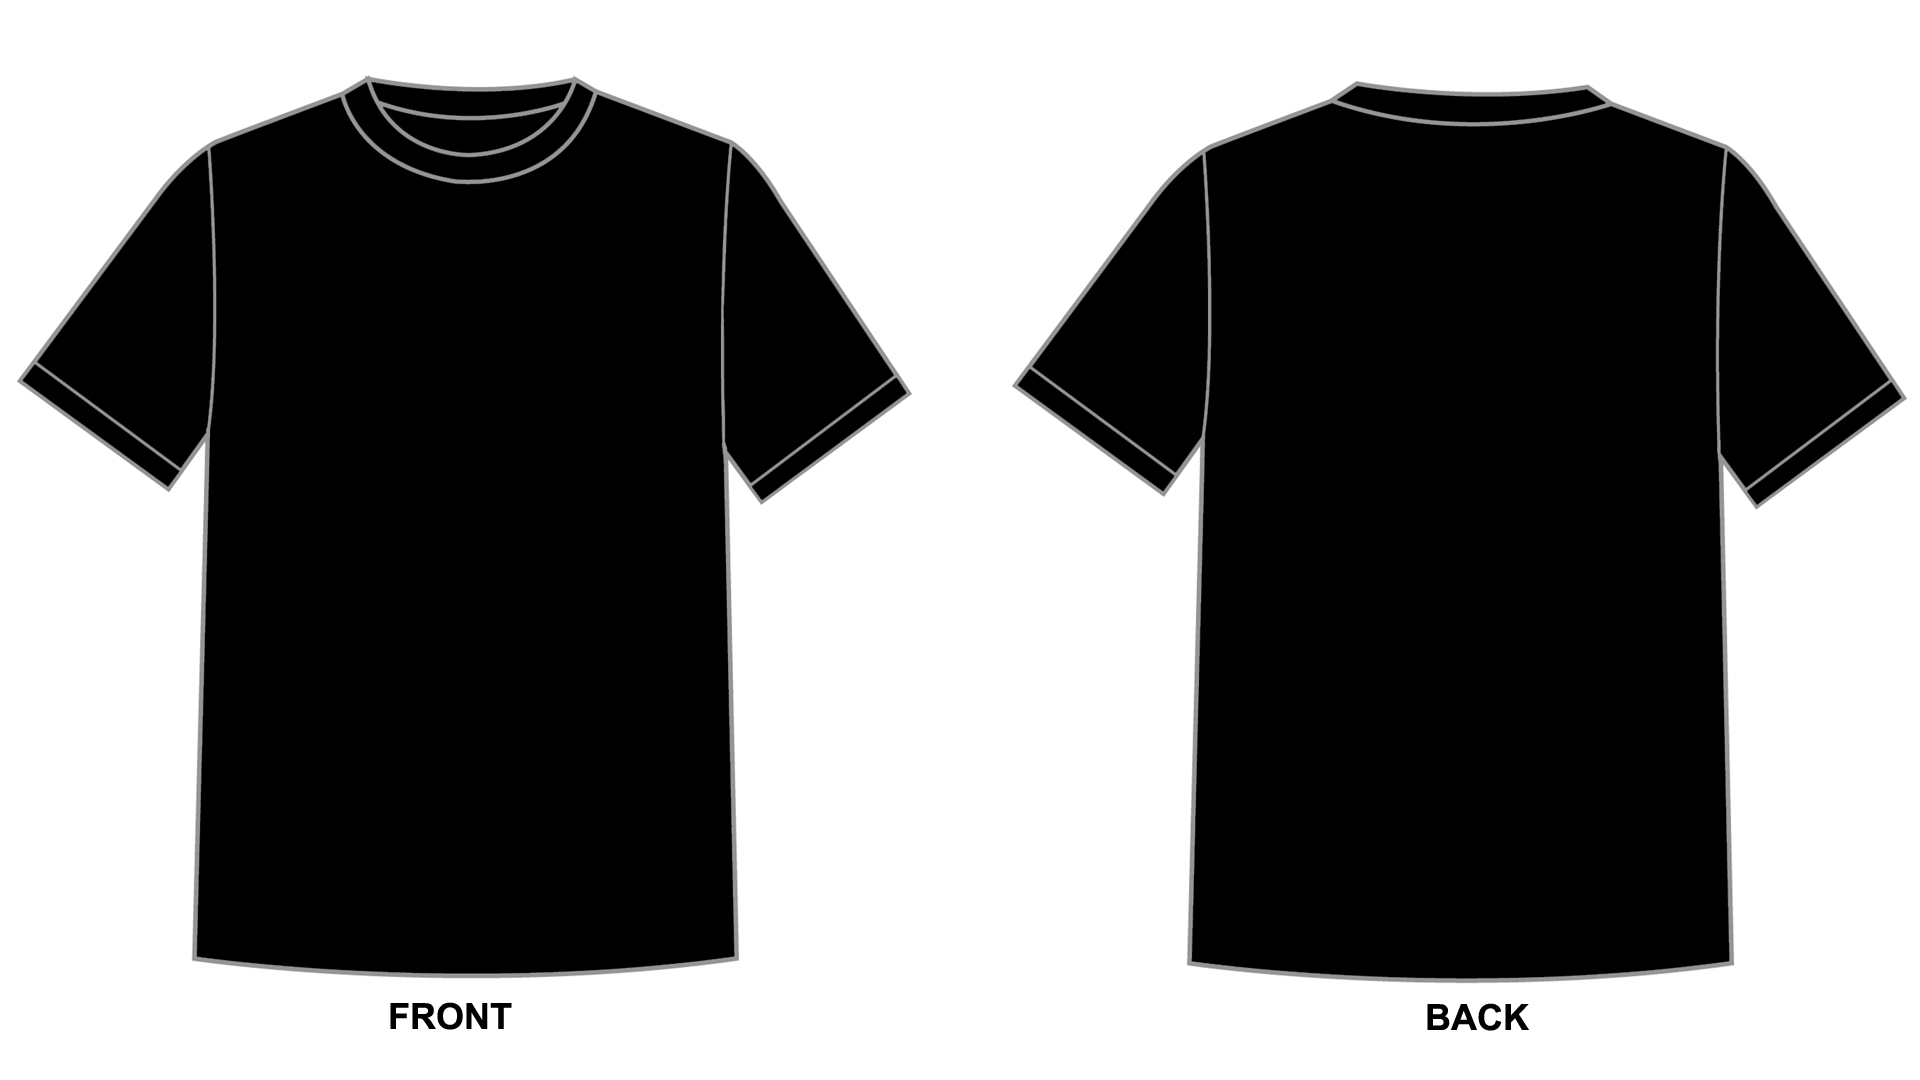 blank tshirt template - Commonpence.co